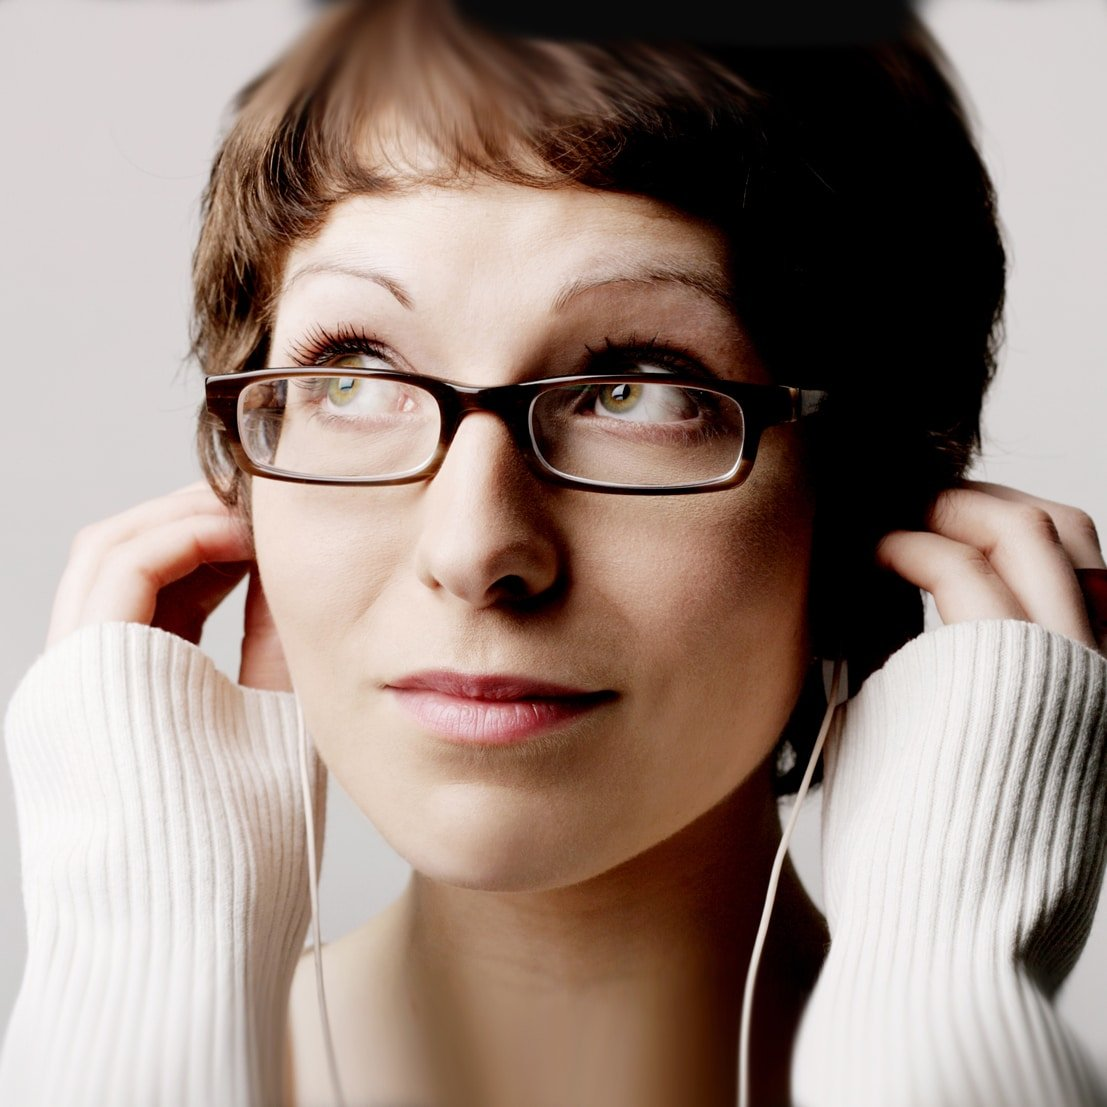 Helen-Arney-female-physician-Science-speaker-musician-tech-stand-up-at-Great-British-Speakers